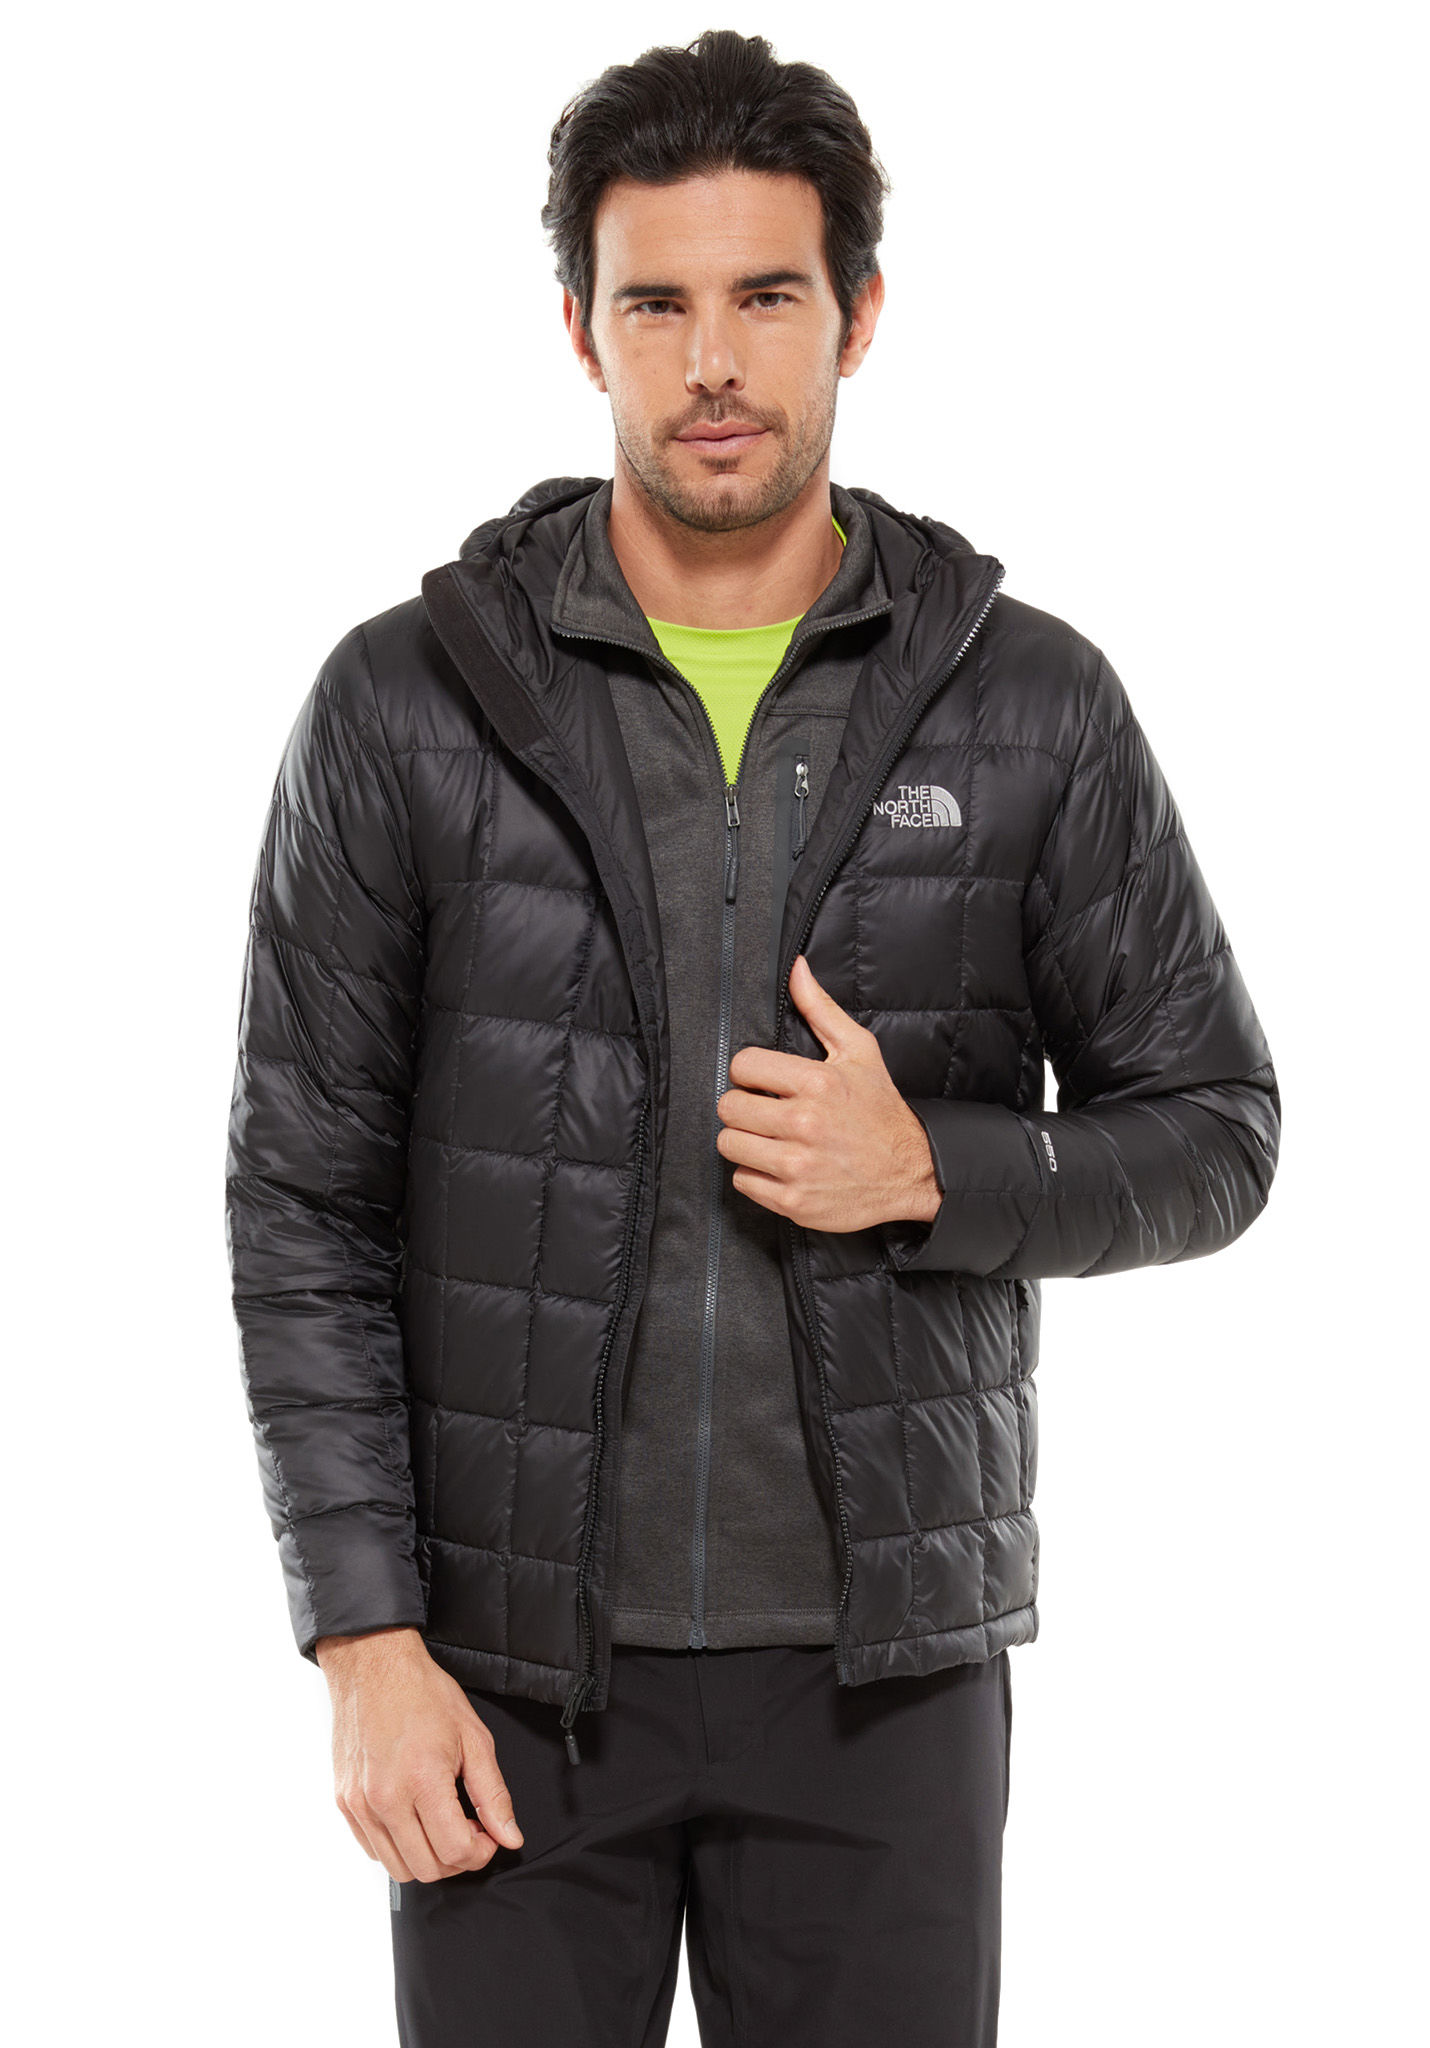 a63d3c0a0 THE NORTH FACE Kabru Hooded Down - Outdoor Jacket for Men - Black